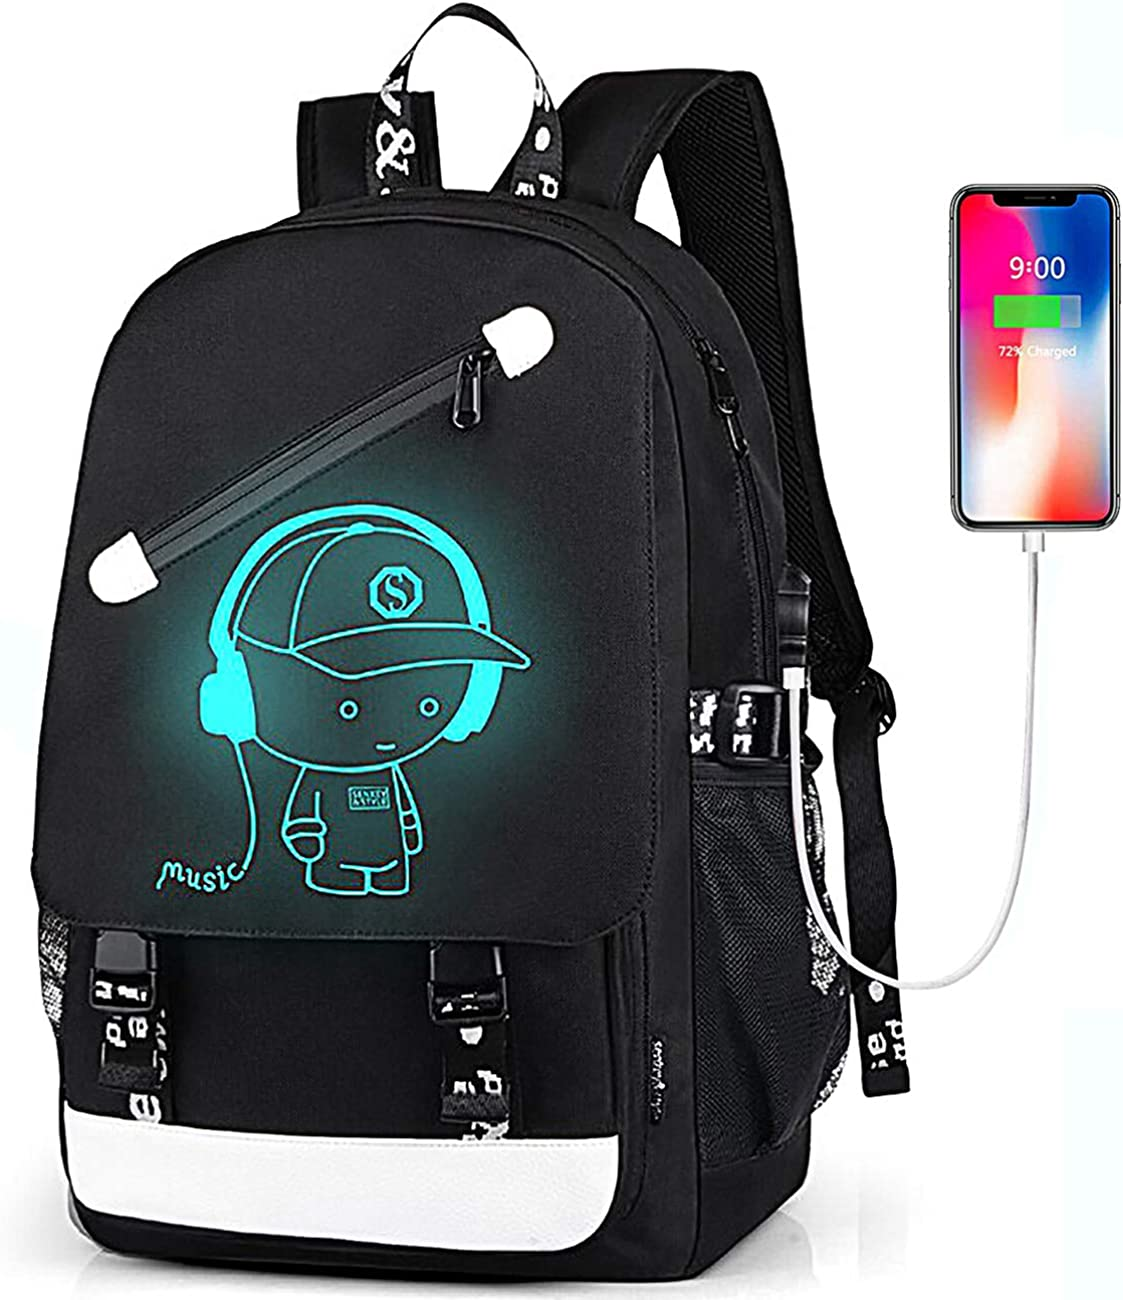 Anime Backpack Laptop Backpack